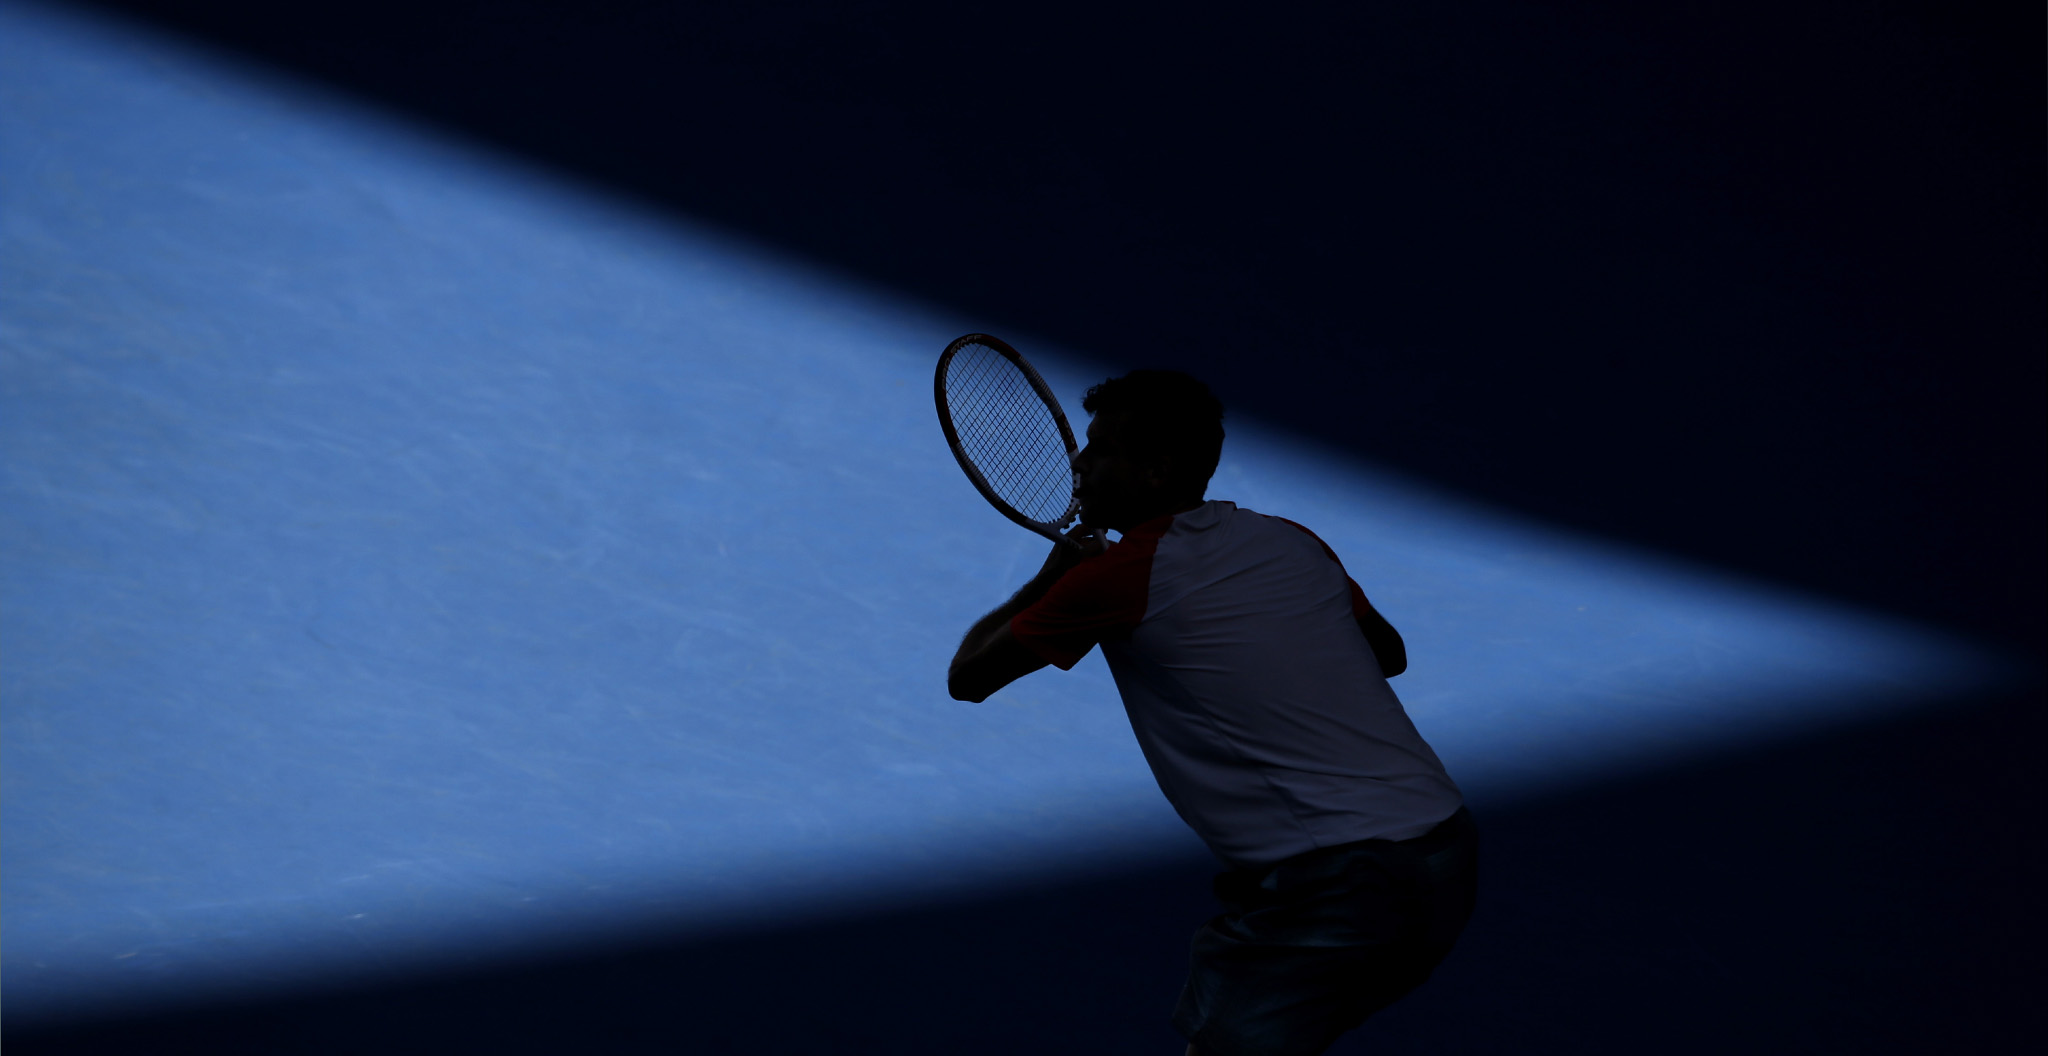 Grigor Dimitrov of Bulgaria is silhouetted as he plays Rafael Nadal of Spain during their quarterfinal at the Australian Open tennis championship in Melbourne, Australia, Wednesday, Jan. 22, 2014.